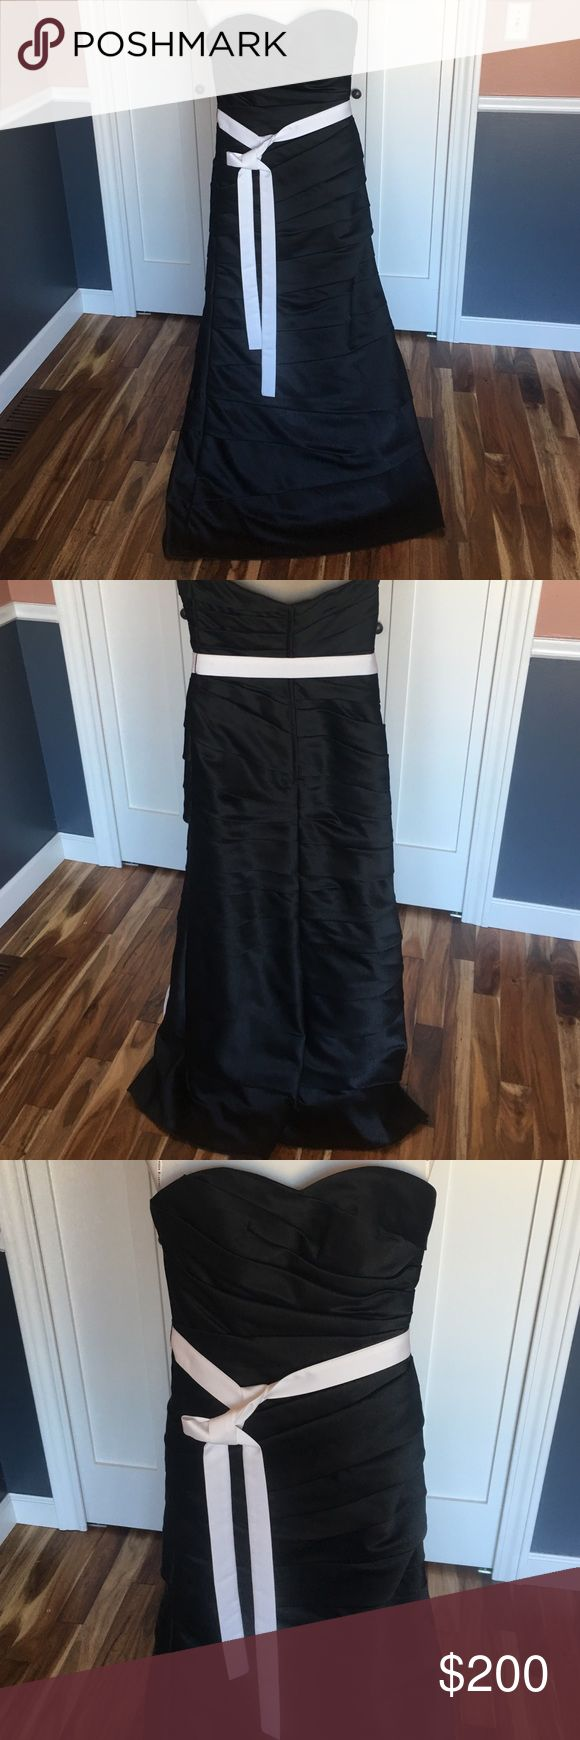 Saison Blanche Bridesmaid Dress Beautiful black Bridesmaid dress.  Has alterations done to fit, so fits more like 4. Also bra cups added.  Could be a prom or formal gown.  I loved wearing this dress, it is elegant. Saison Blanche Dresses Wedding